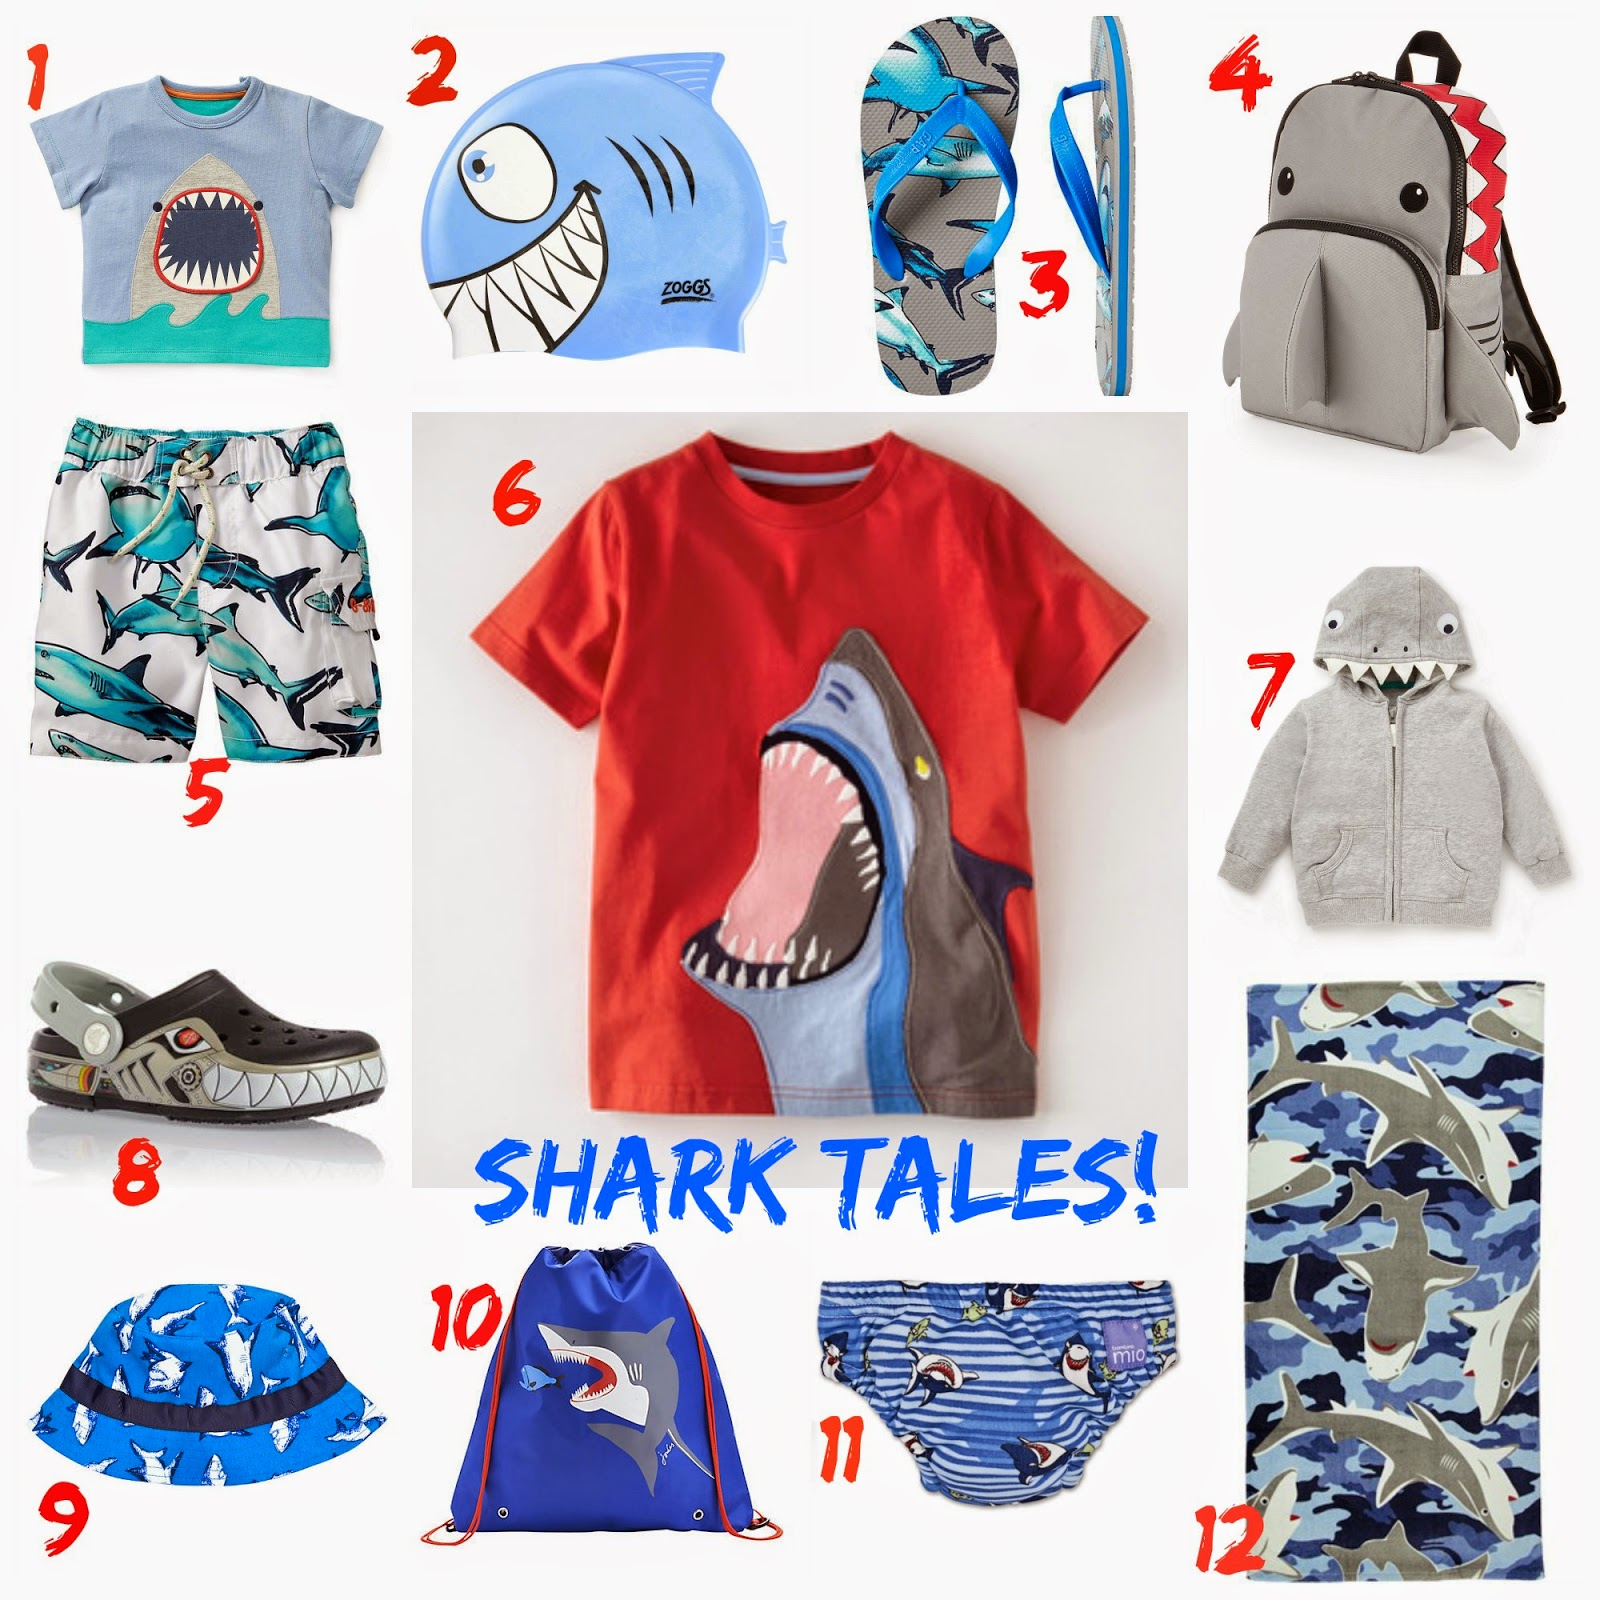 V. I. BUYS, boys clothes, boys fashion, fashion, fashion trends, sharks, john lewis, bode, matalan, next, shark, shark print, shark week, fashion, boys, flamingos, fruit print, boys, fashion, style, mamasVIB, blog, fashionable, style, prints, fish, shark print, graphics